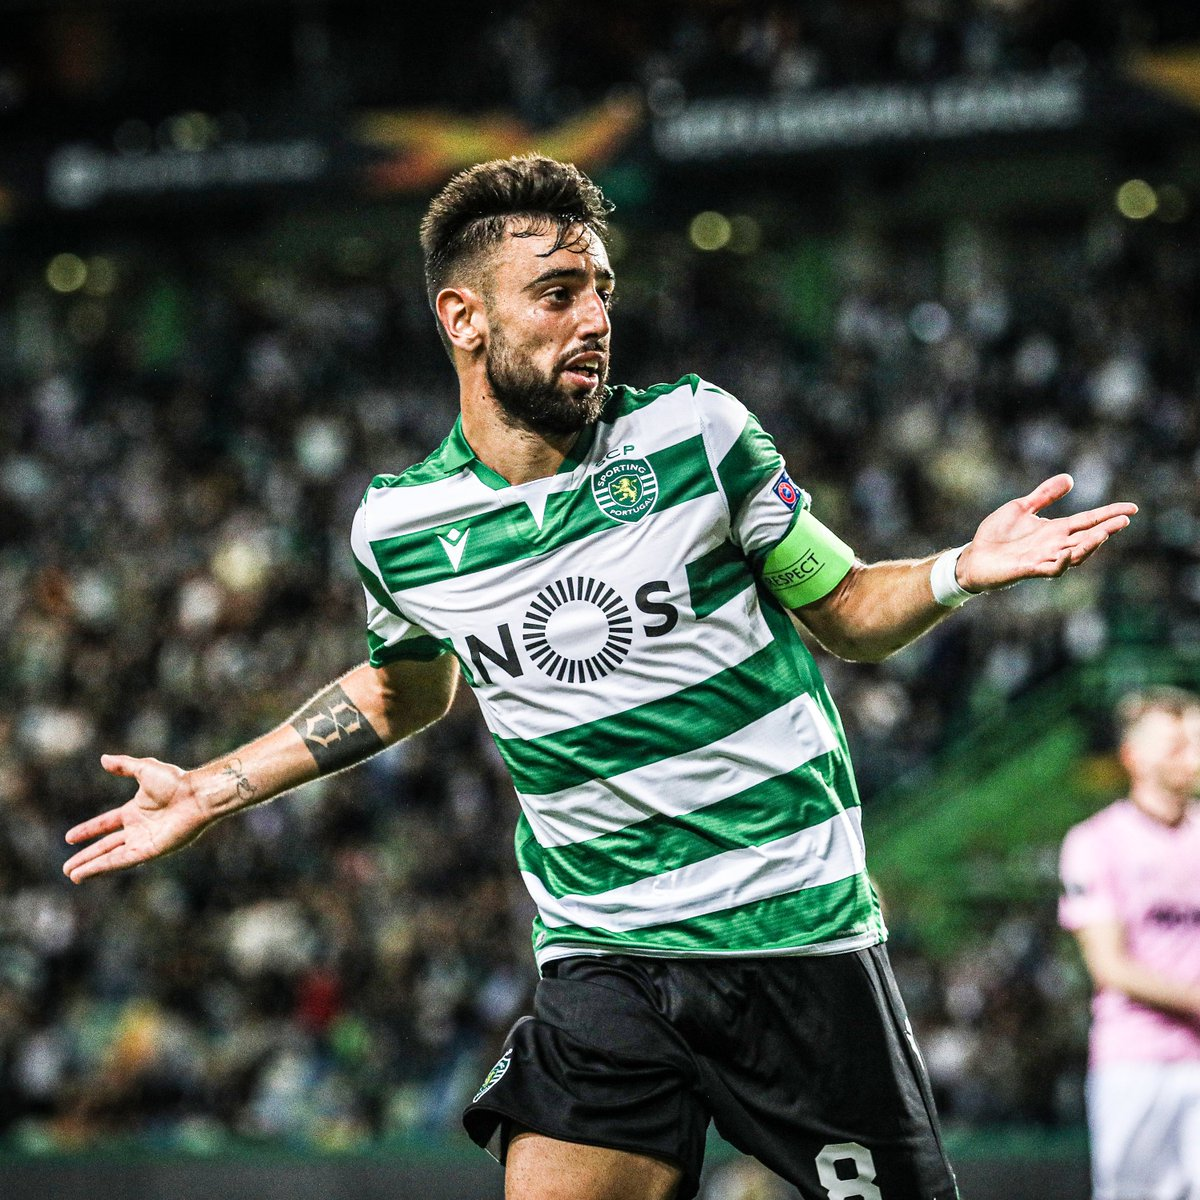 With 14 goals and 12 assists, Bruno Fernandes has been involved in 26 goals for Sporting and United this season.  Different leagues, same Bruno 🔥 https://t.co/vu5MtZPh30